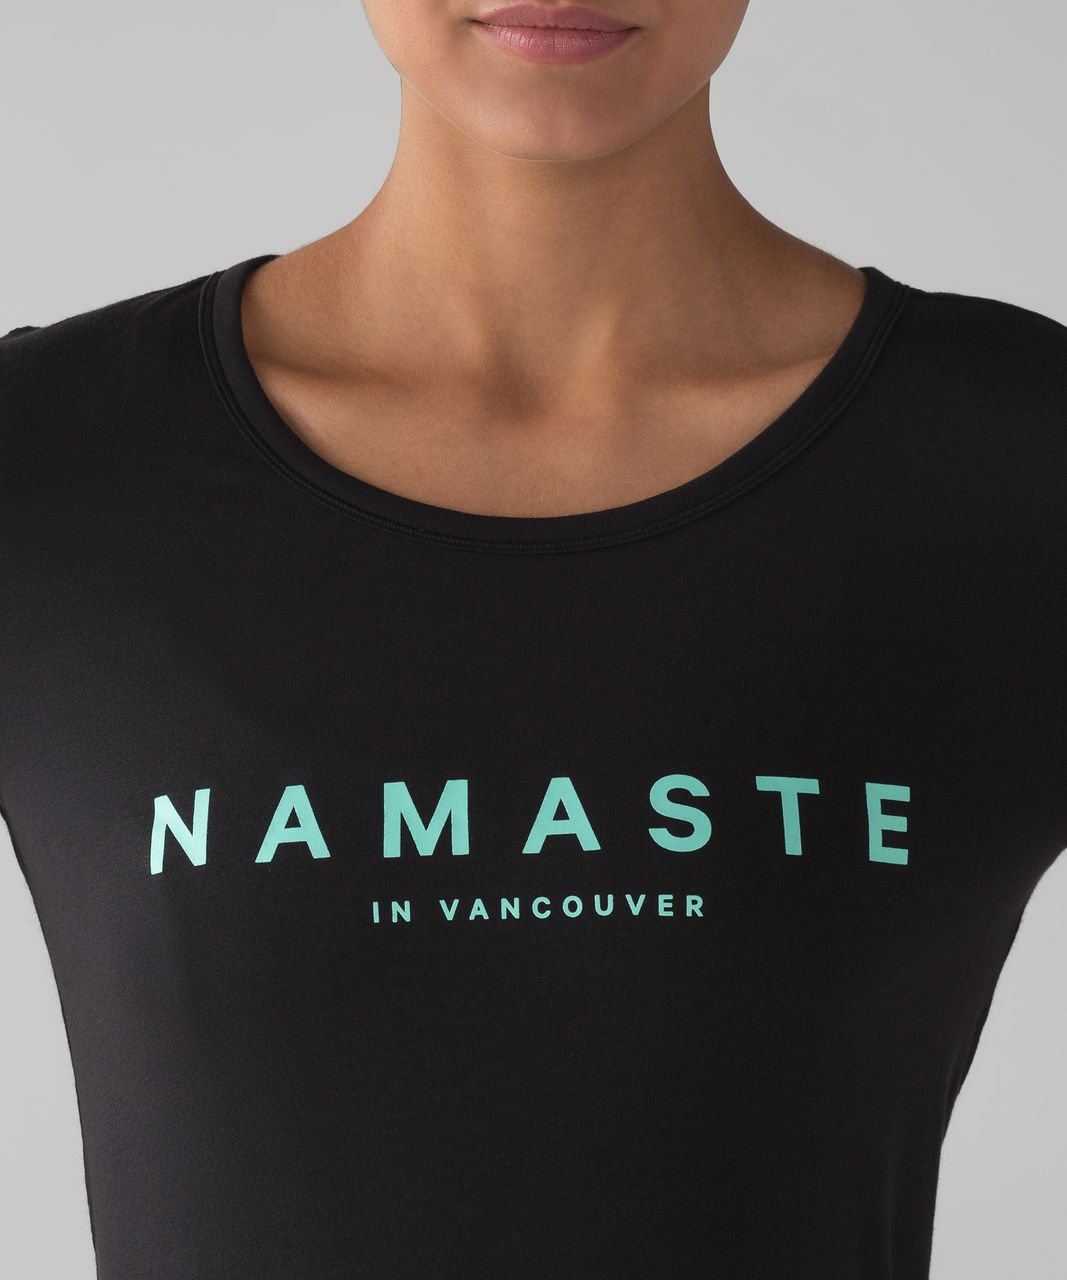 Lululemon Love Crew (Namaste) - Black